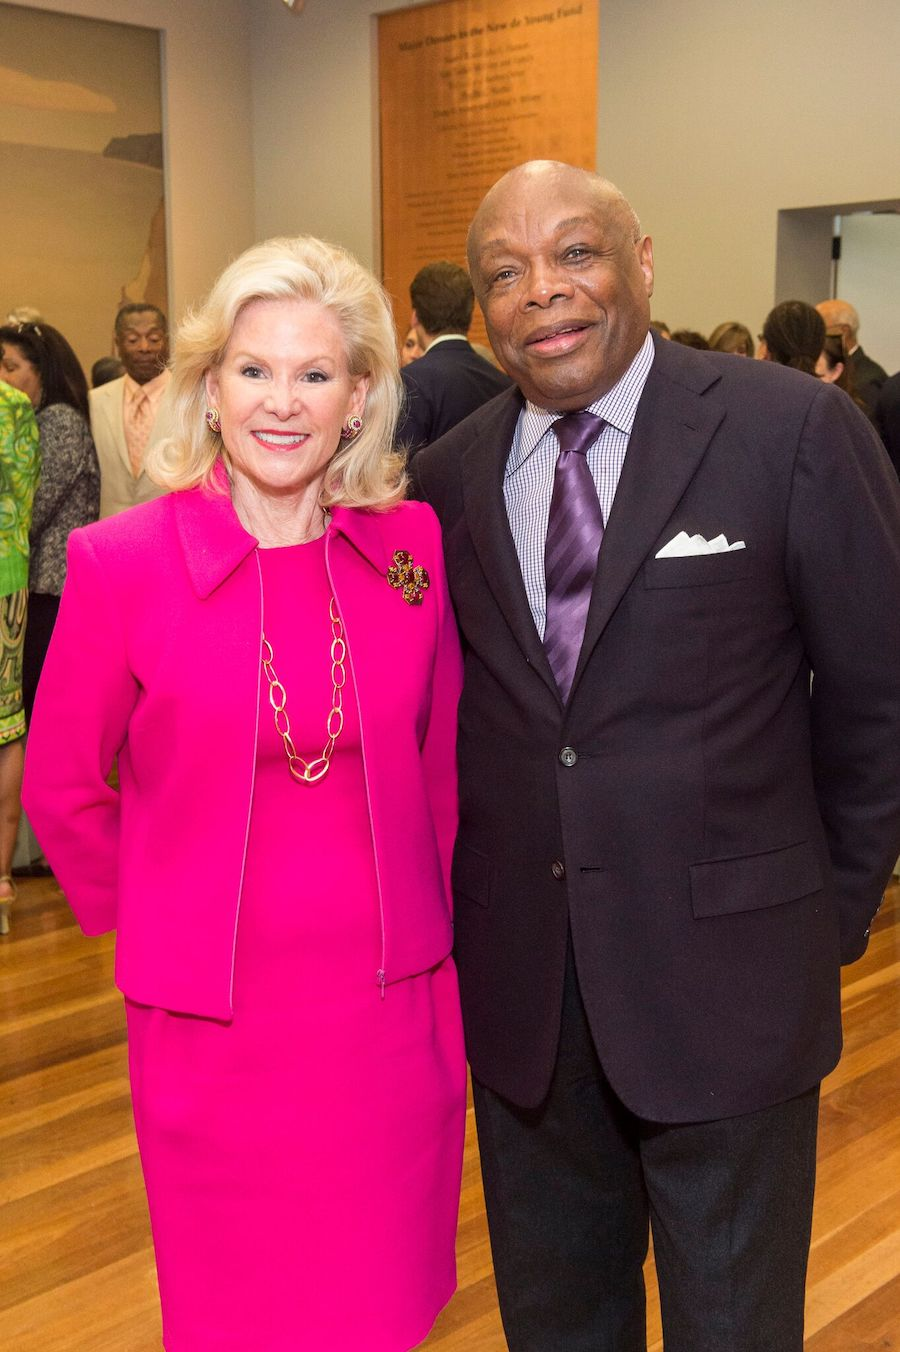 Former mayor Willie Brown and Wilsey at the Revelations Donor Reception at the de Young in June 2017